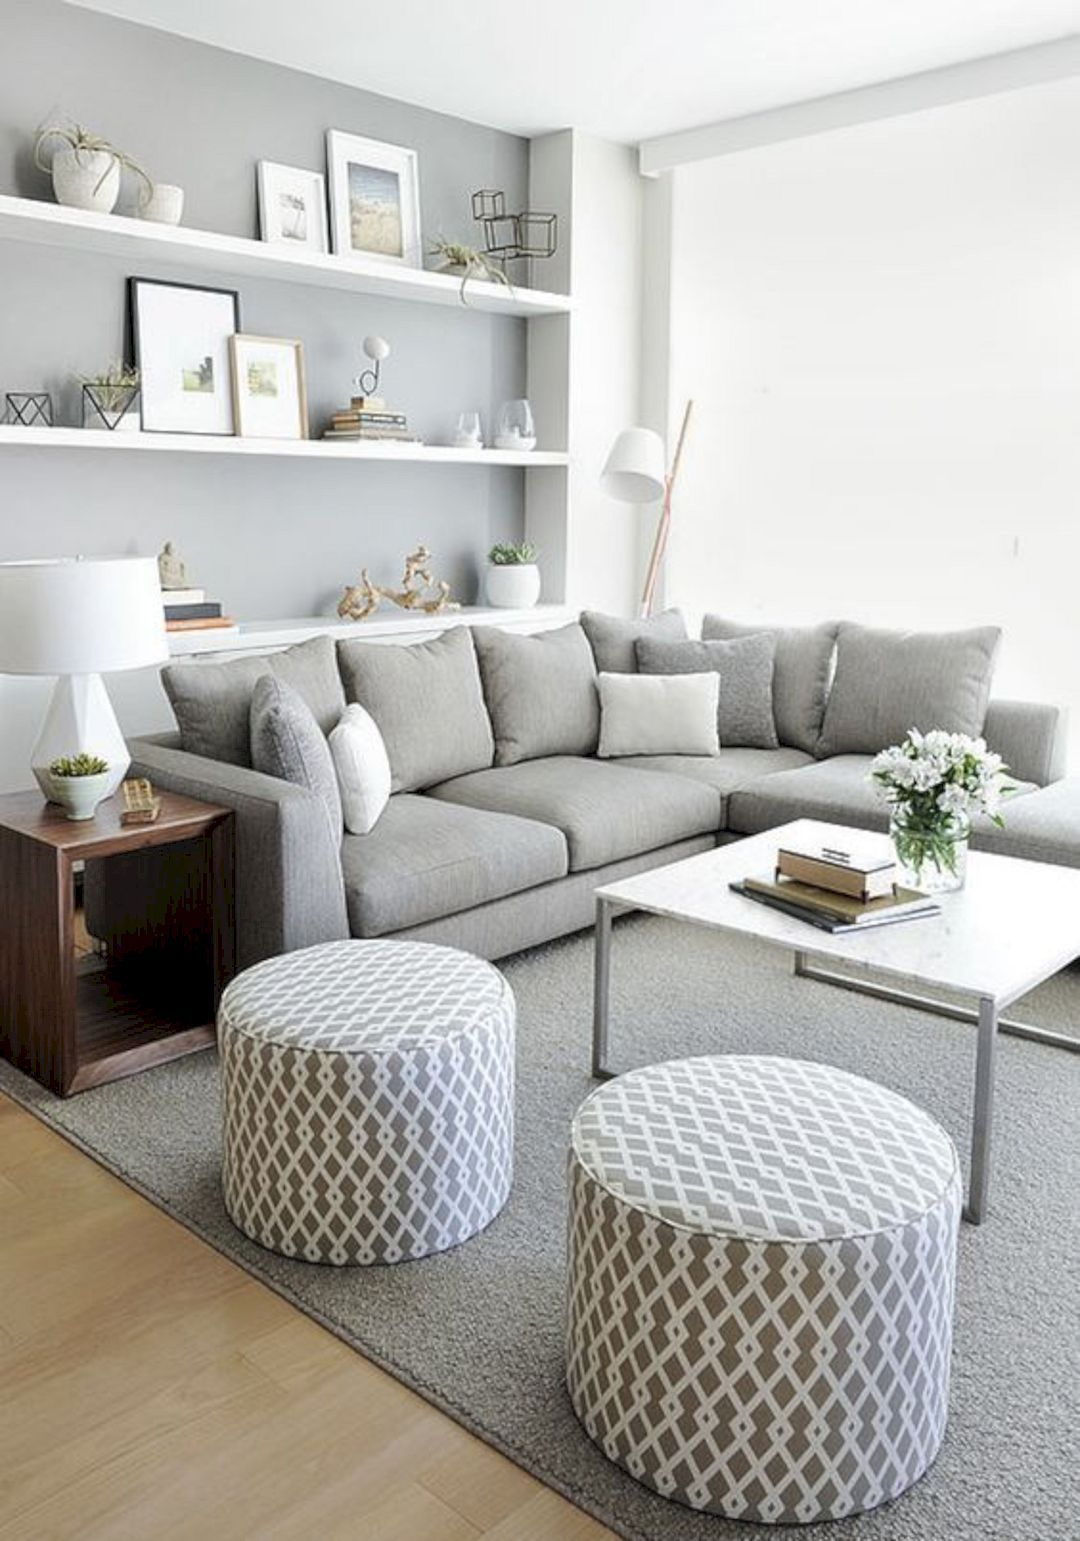 16 Simple Interior Design Ideas For Living Room Small Living